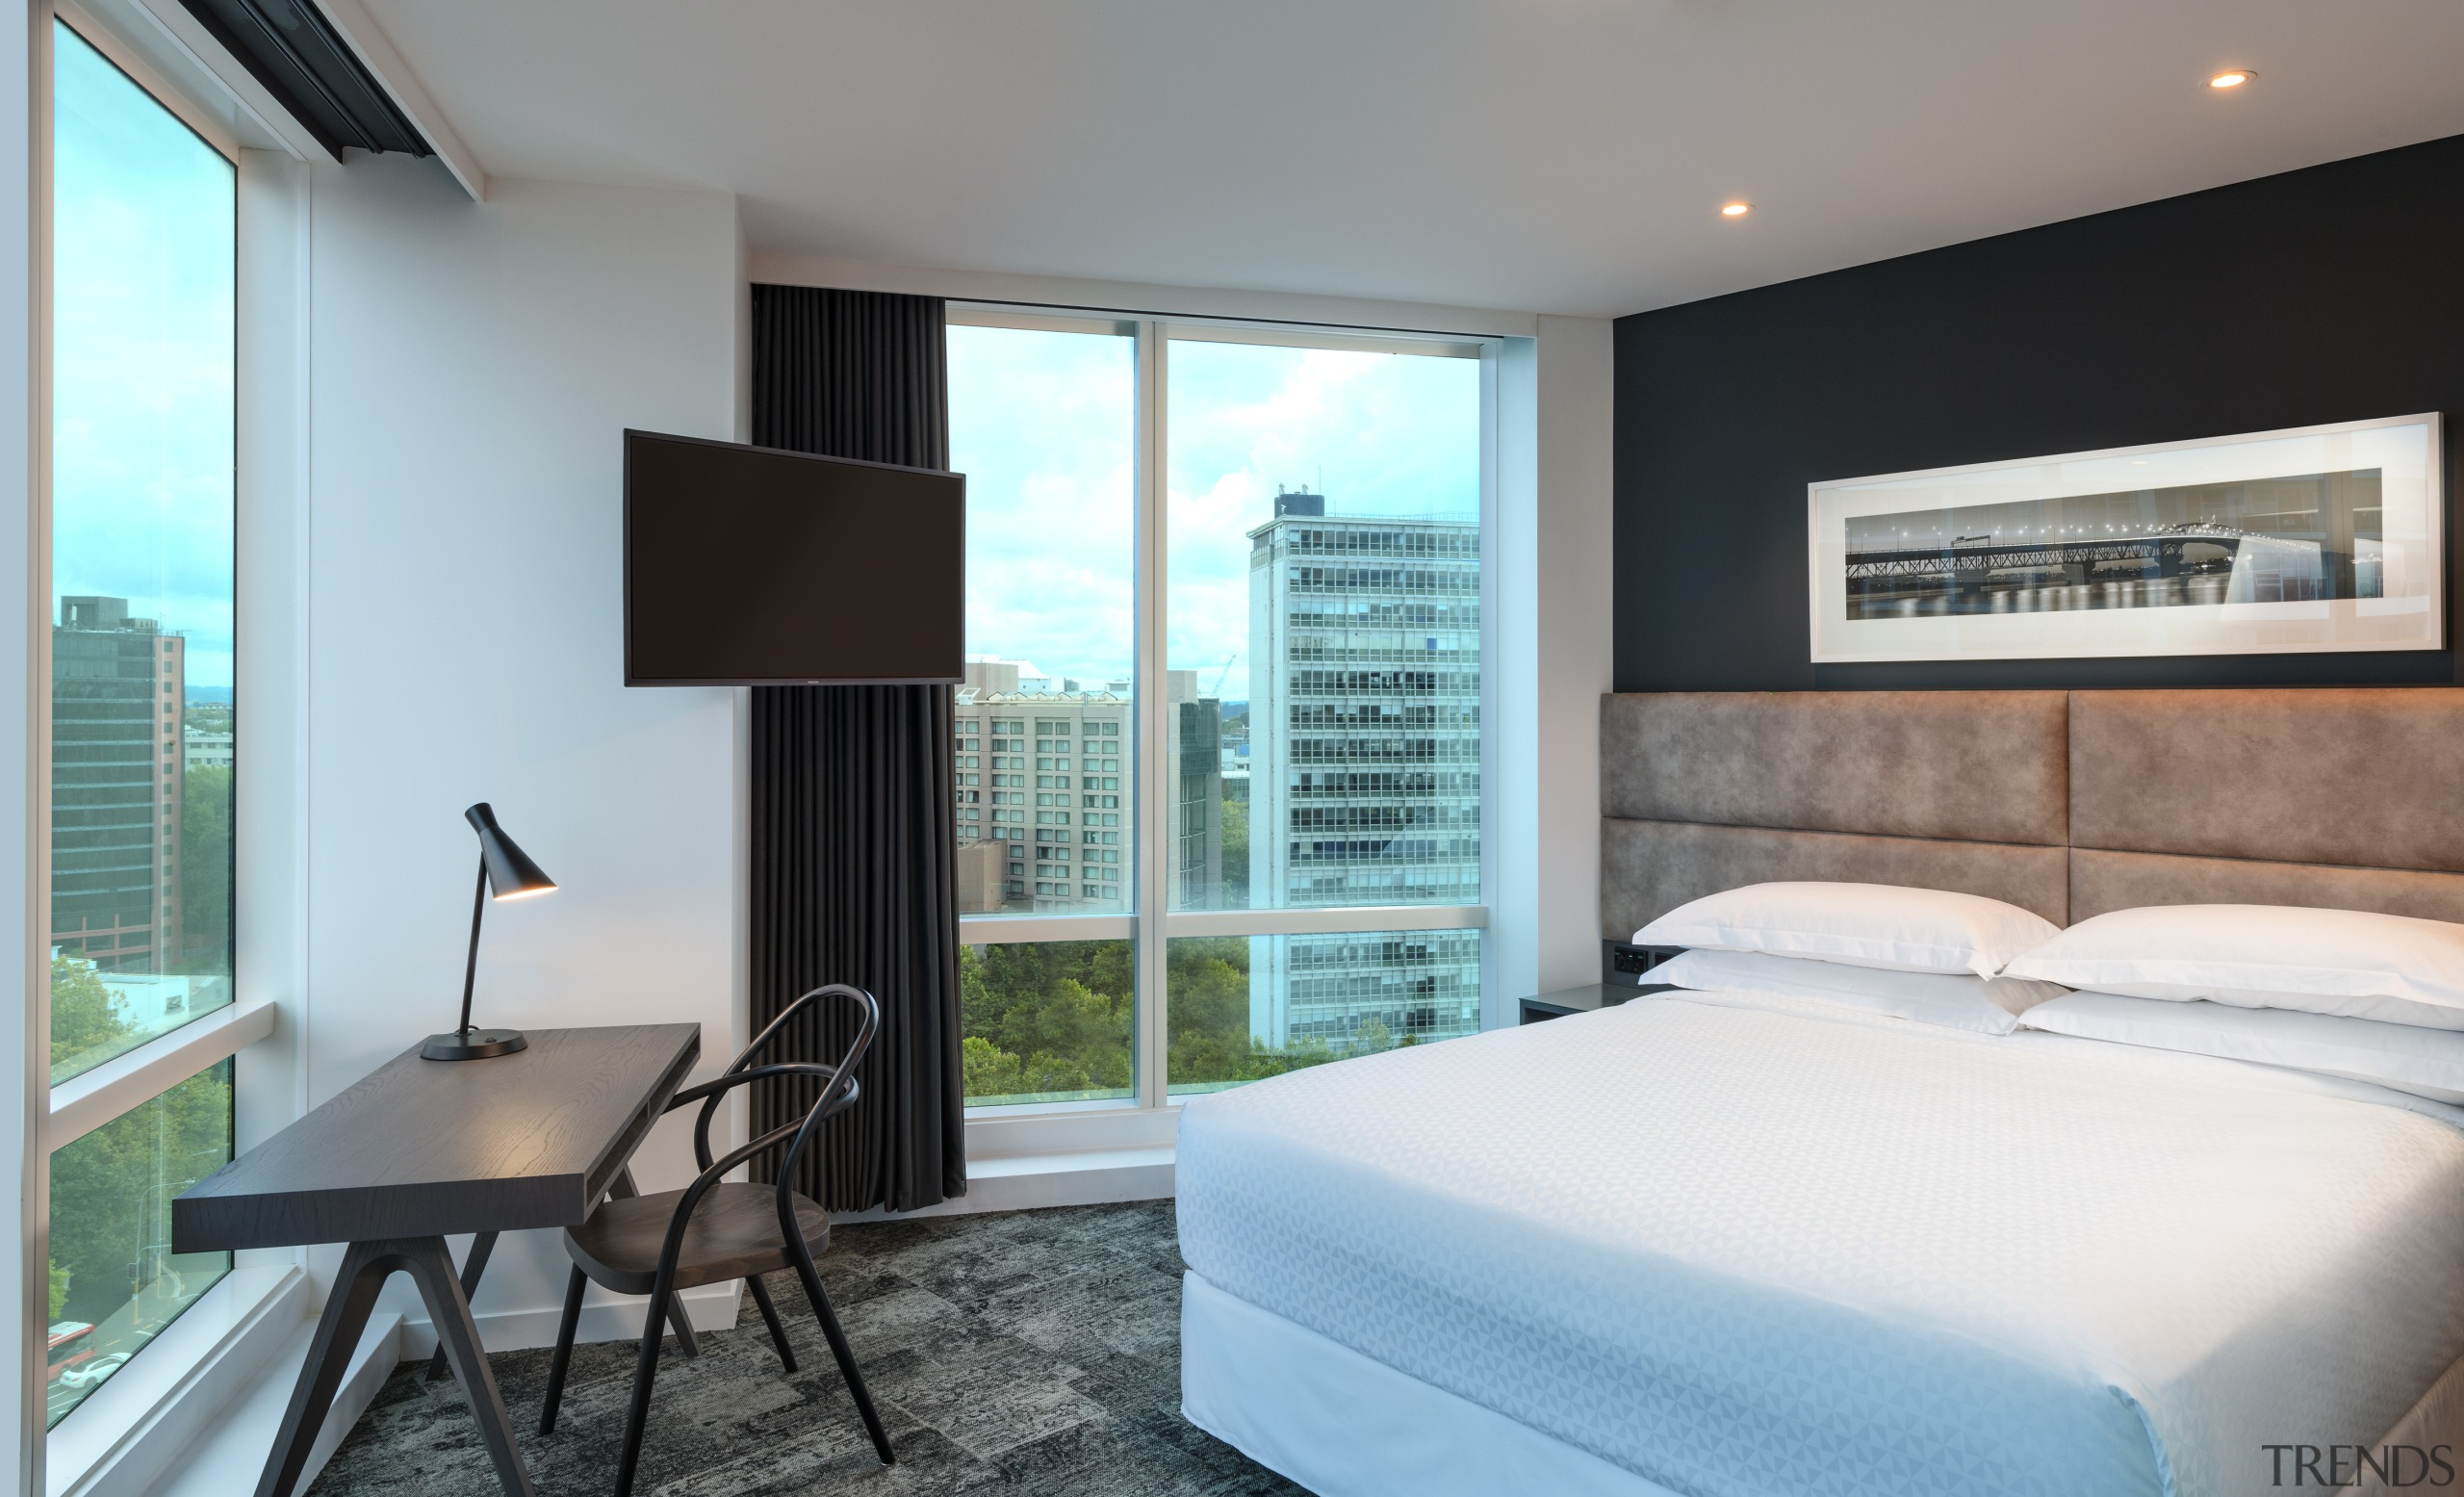 Floor-to-ceiling windows ensure spectacular views from Four Points Hotel, bed, room, boutique hotel, furniture, four points sheraton, Russell Property group